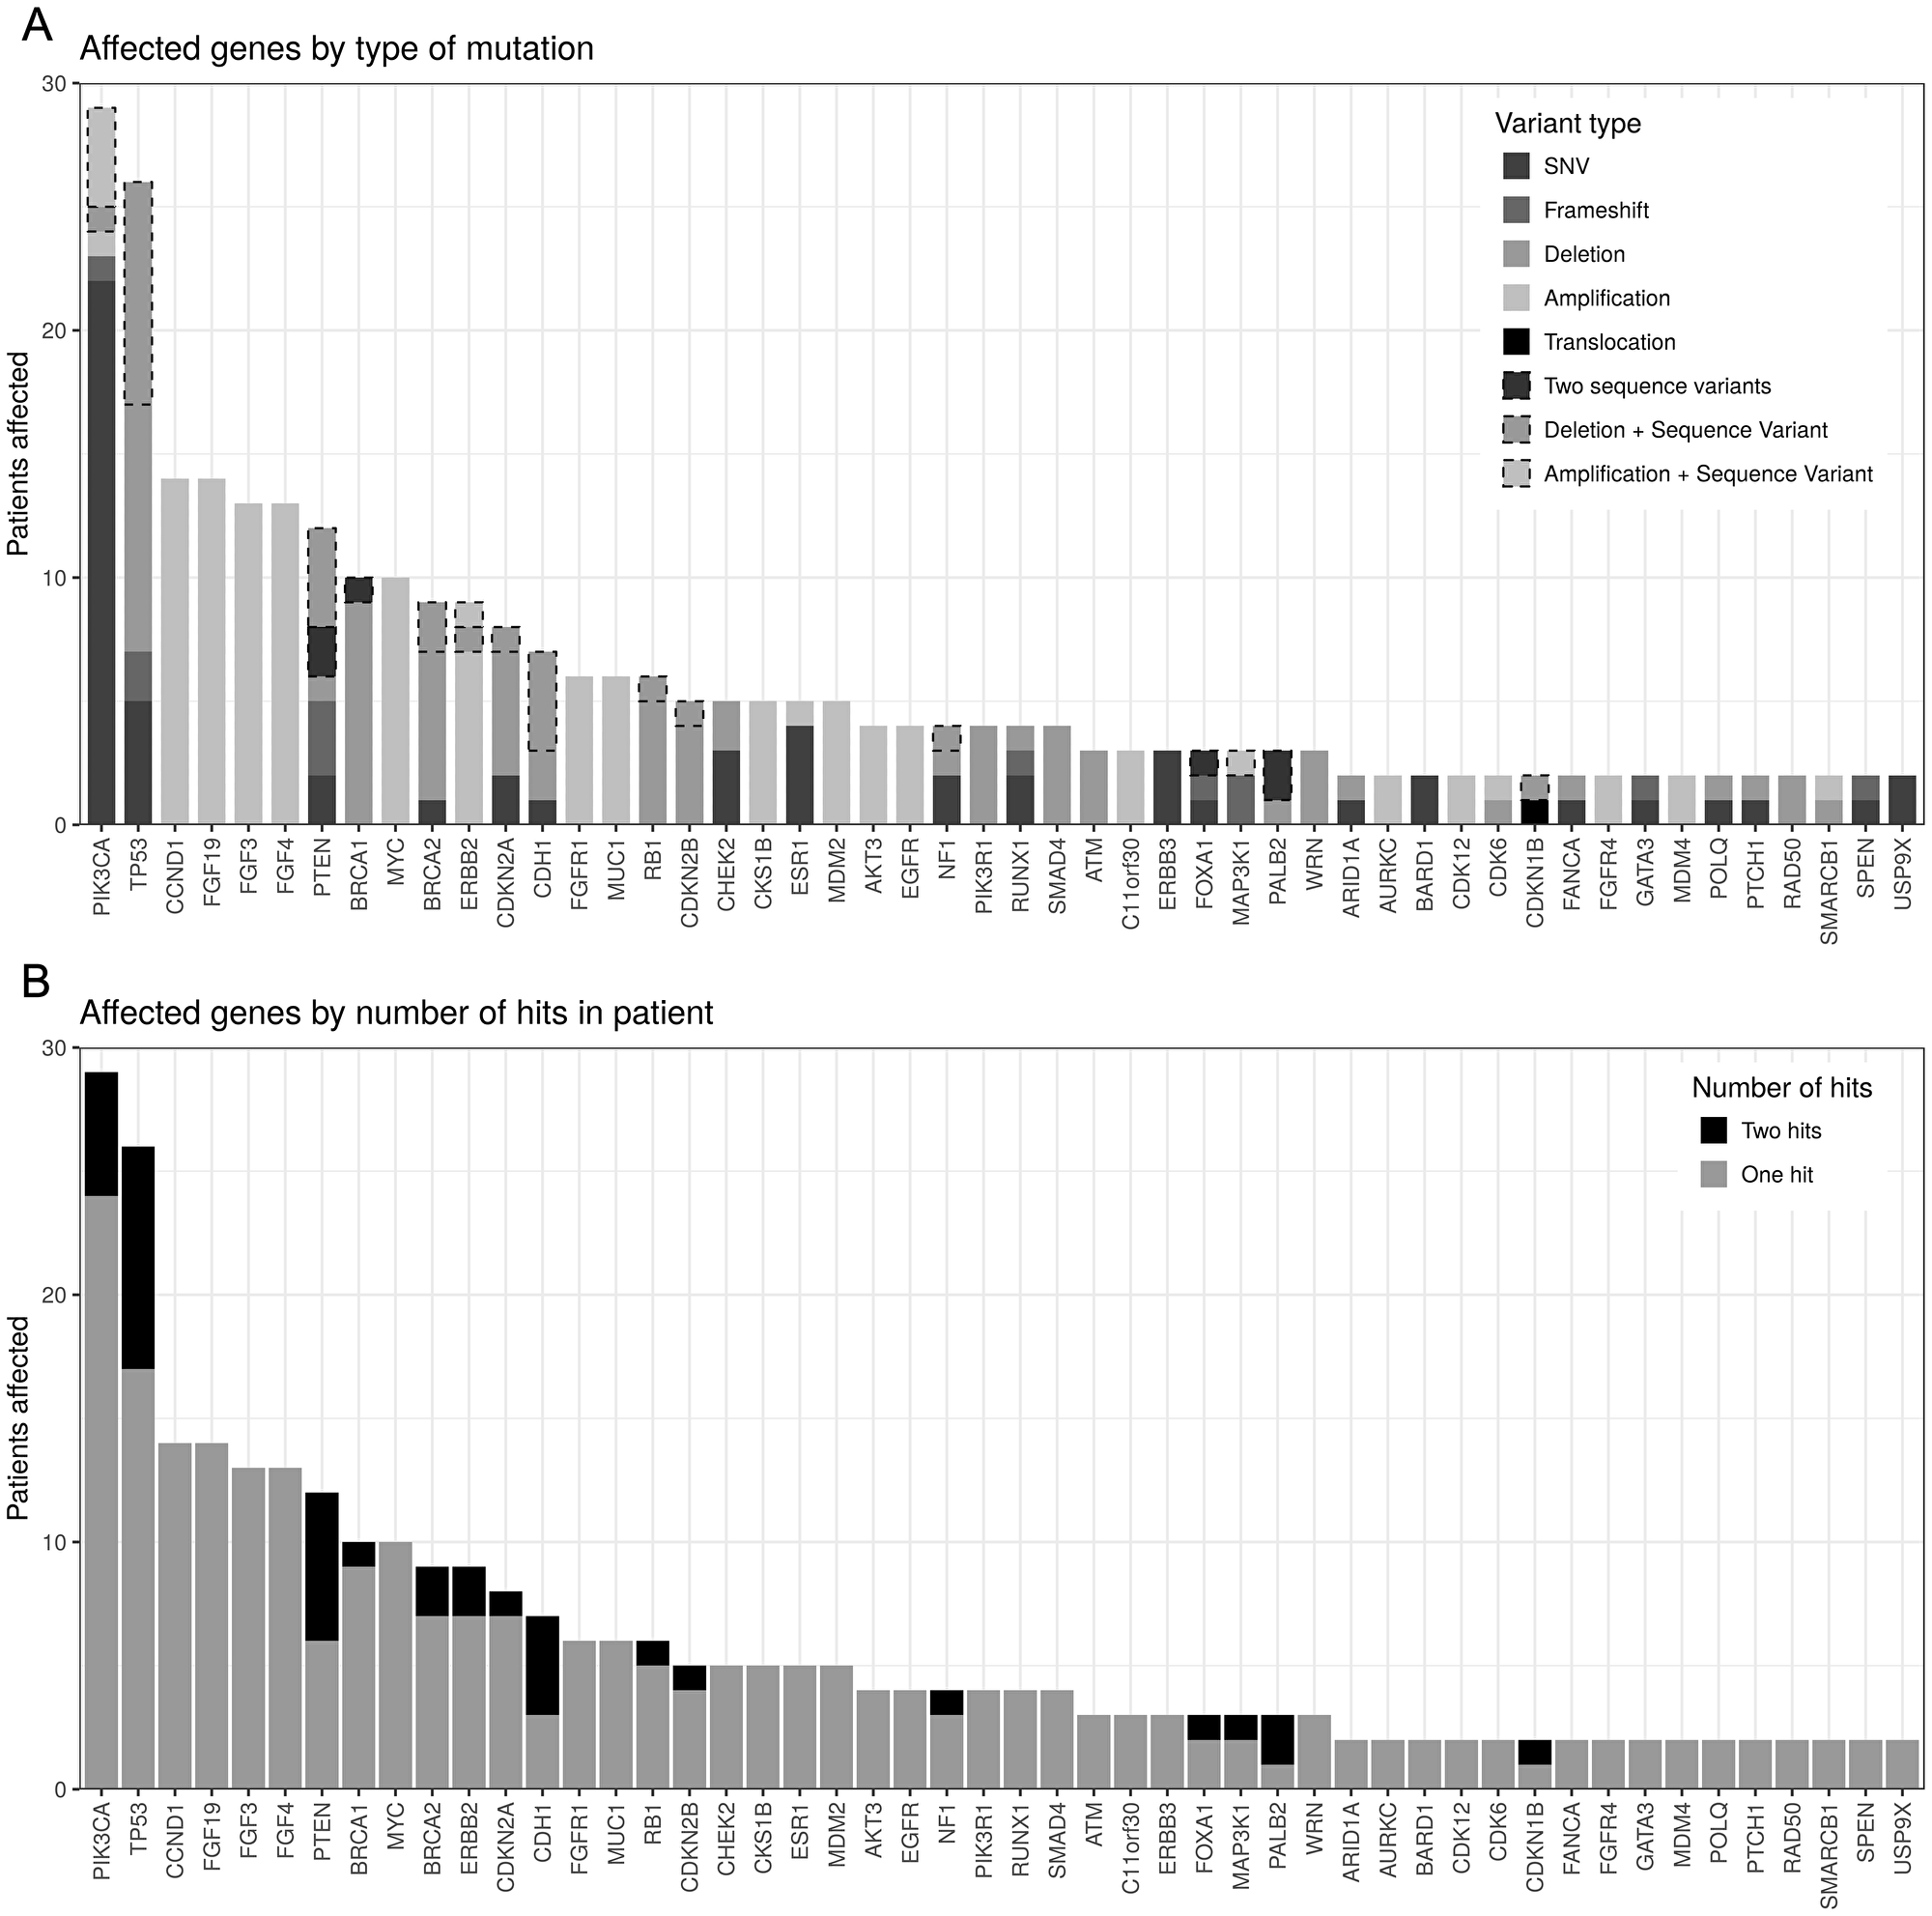 Genes with reported mutations order by number of patients affected.